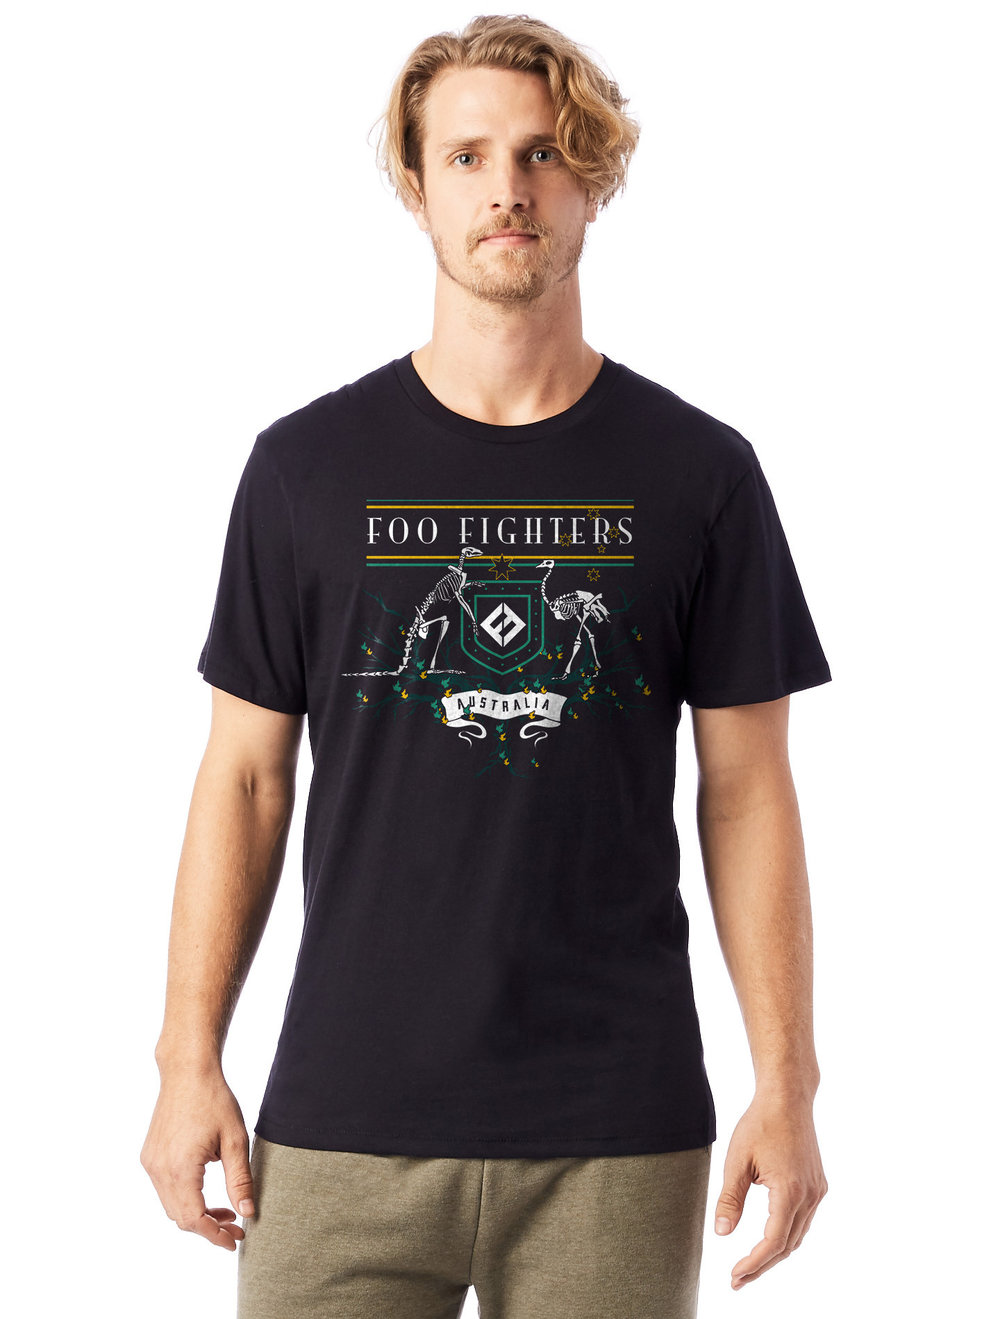 foo-fighters-australia-model.jpg